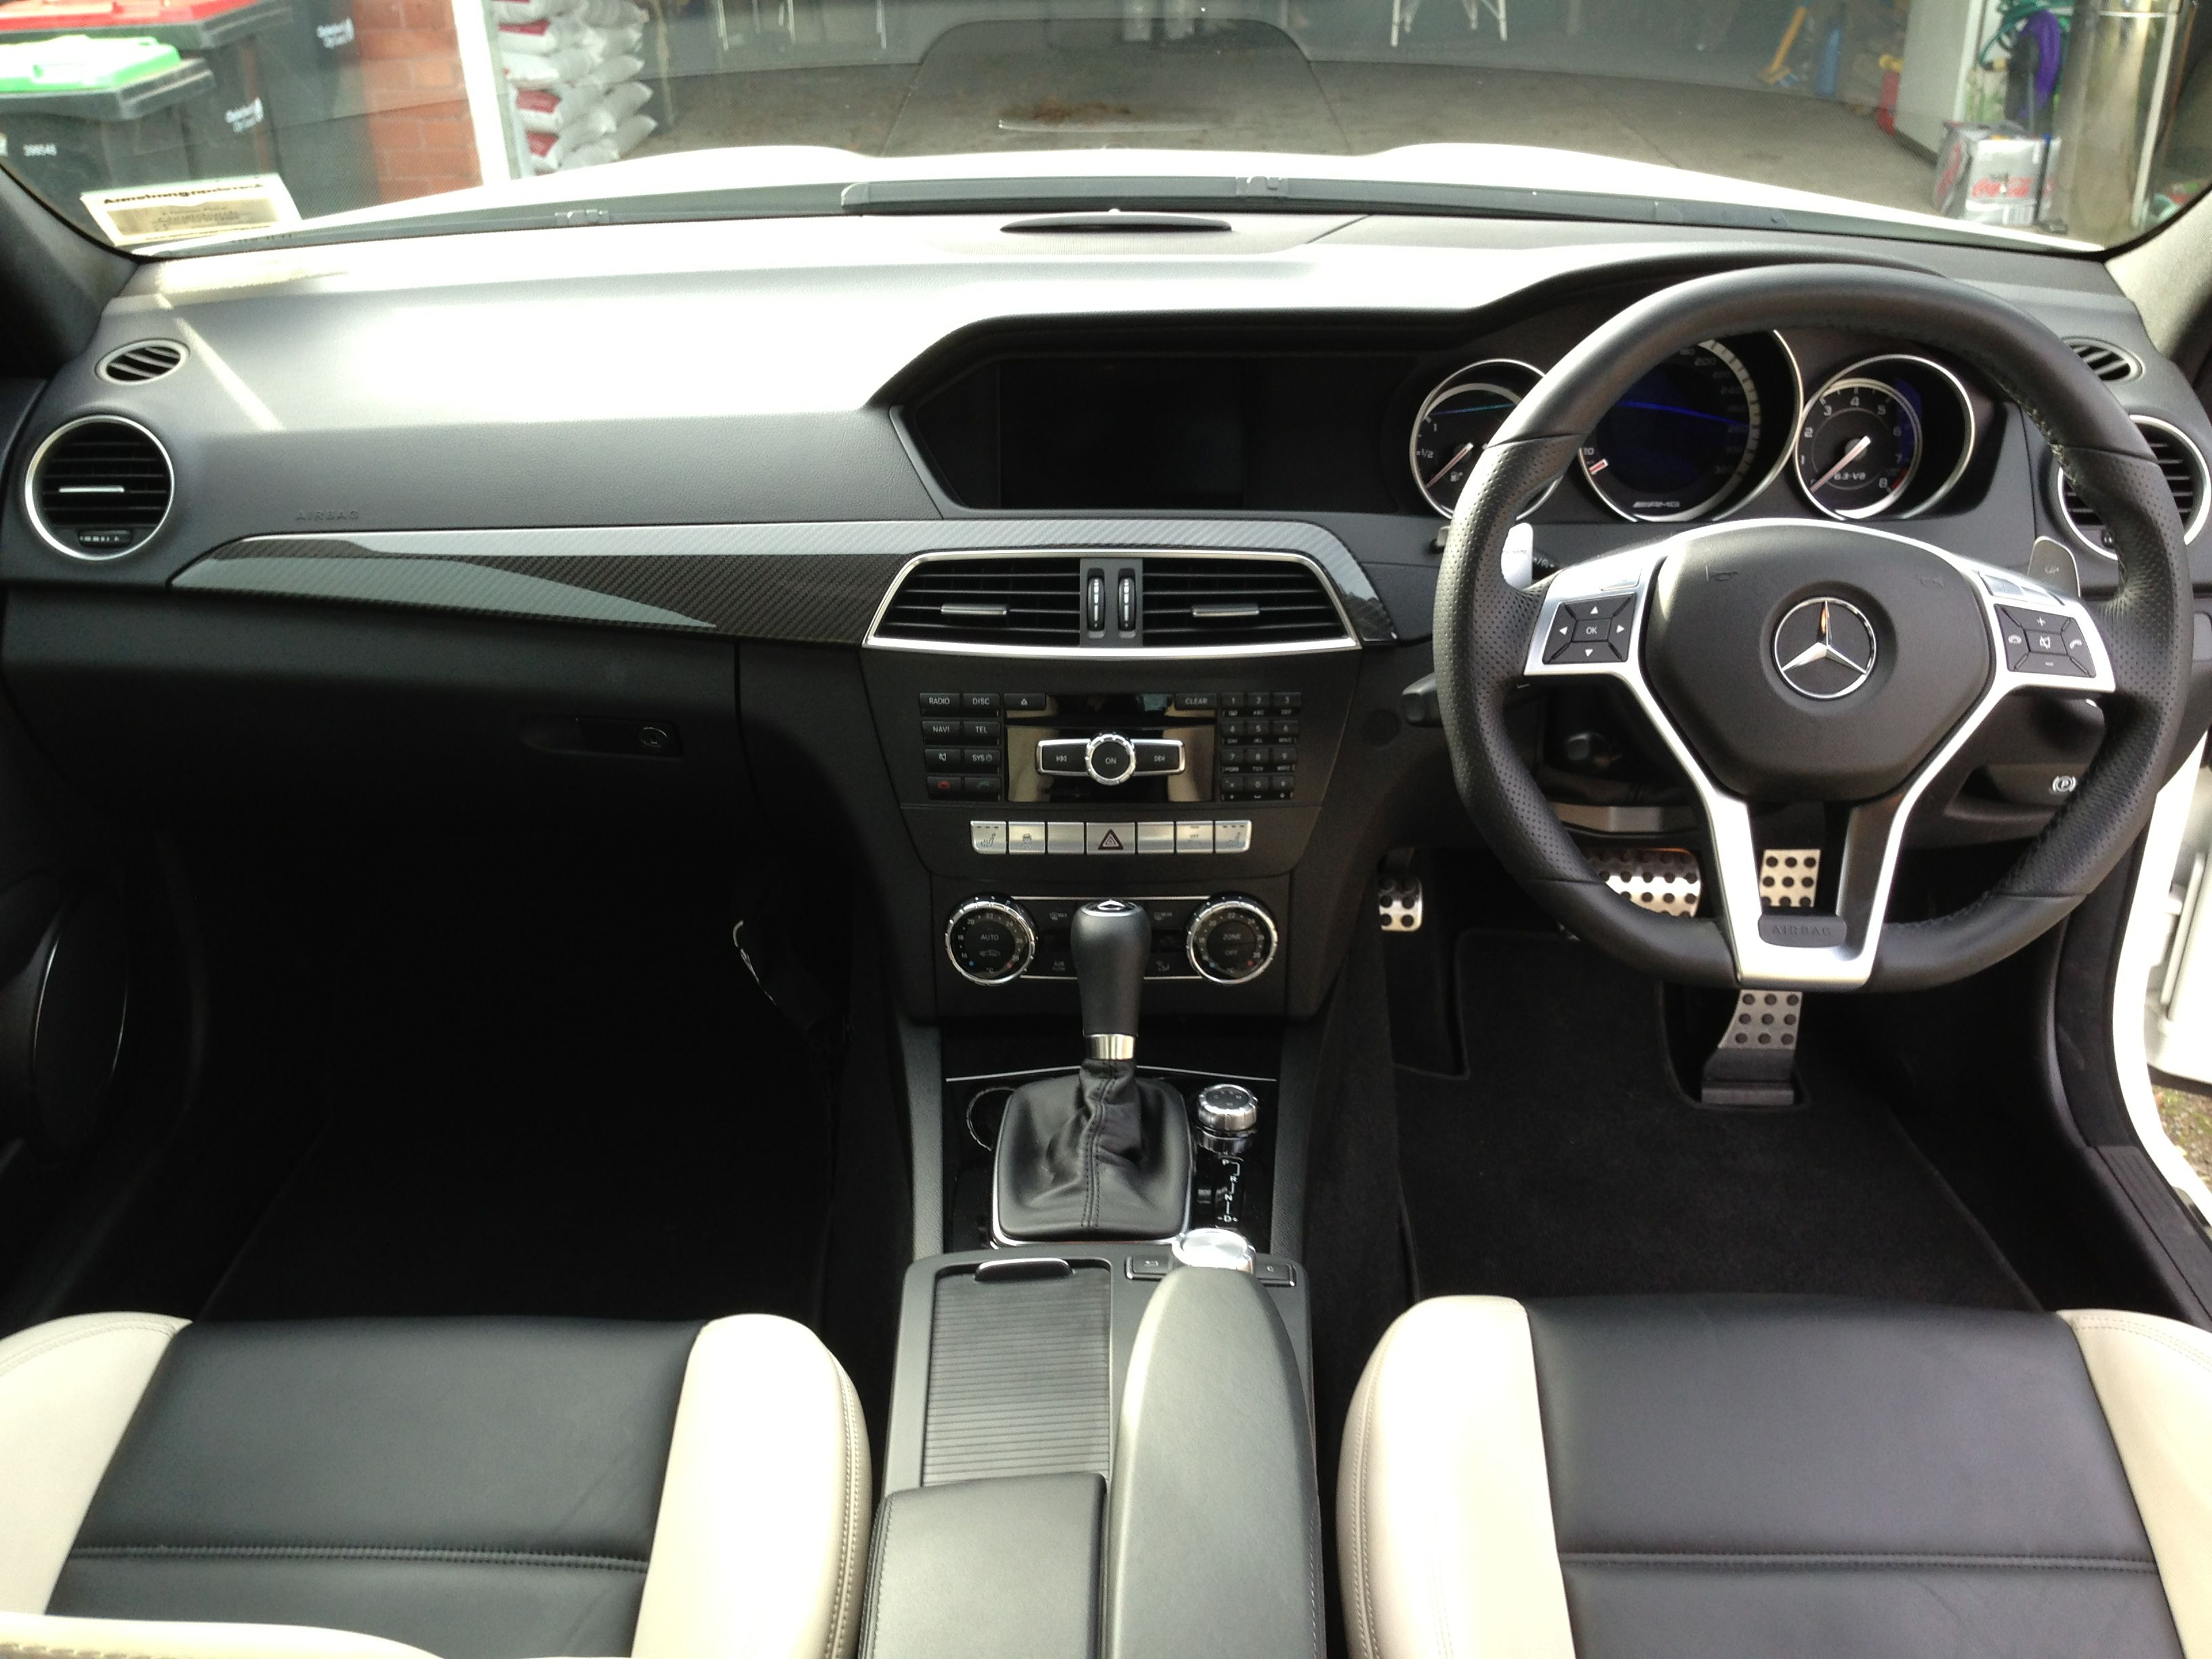 Full Front View With Images Mercedes C63 Amg Mercedes C63